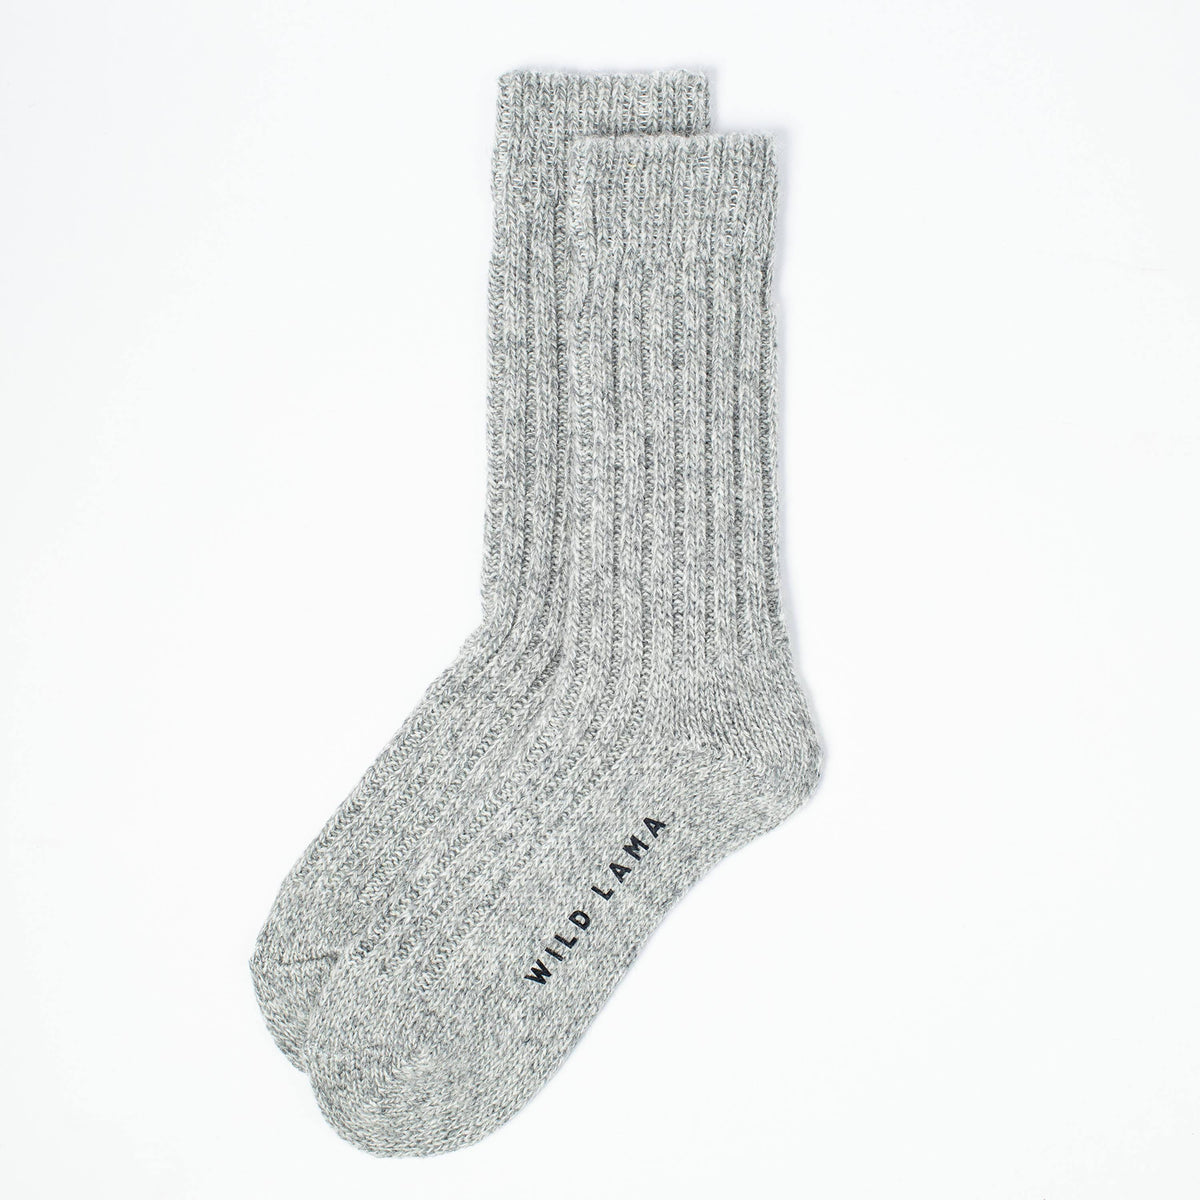 Merino Wool Socks Men - Light Gray